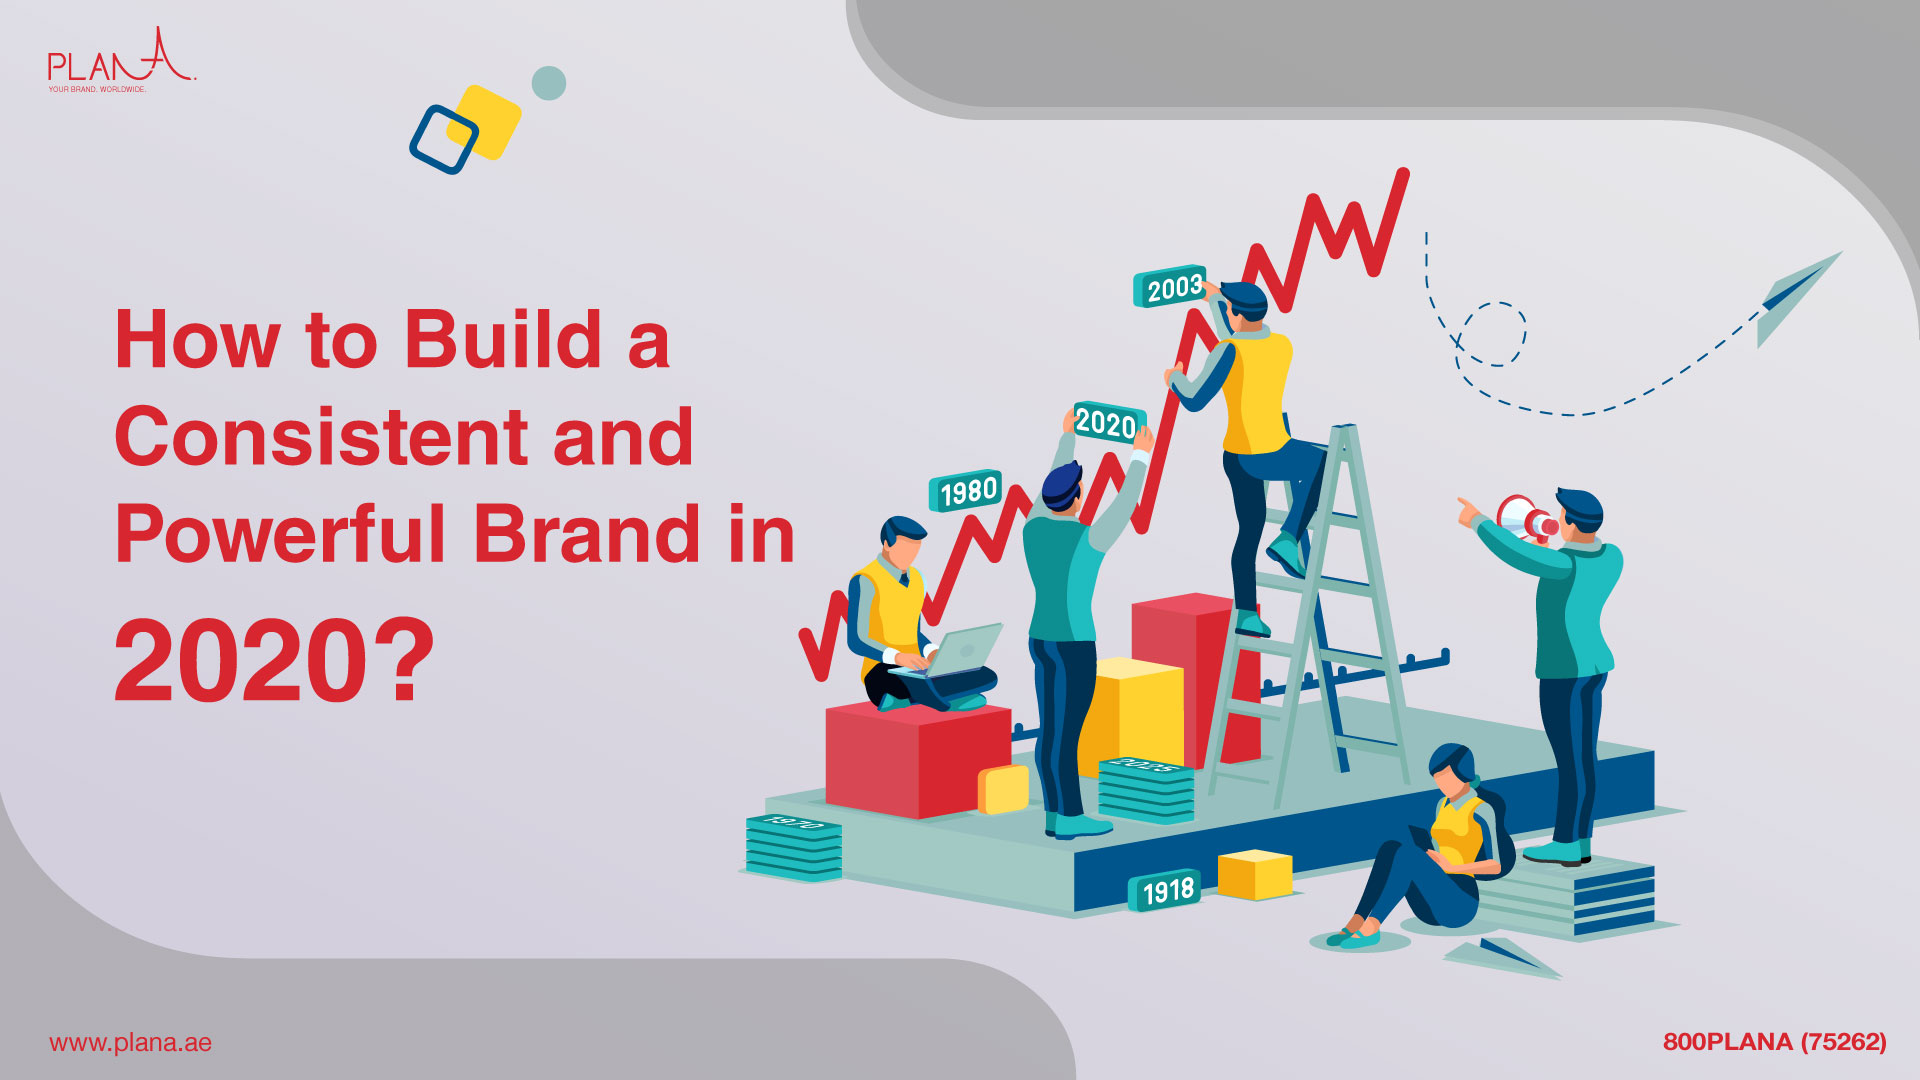 How to Build a Consistent and Powerful Brand in 2020?